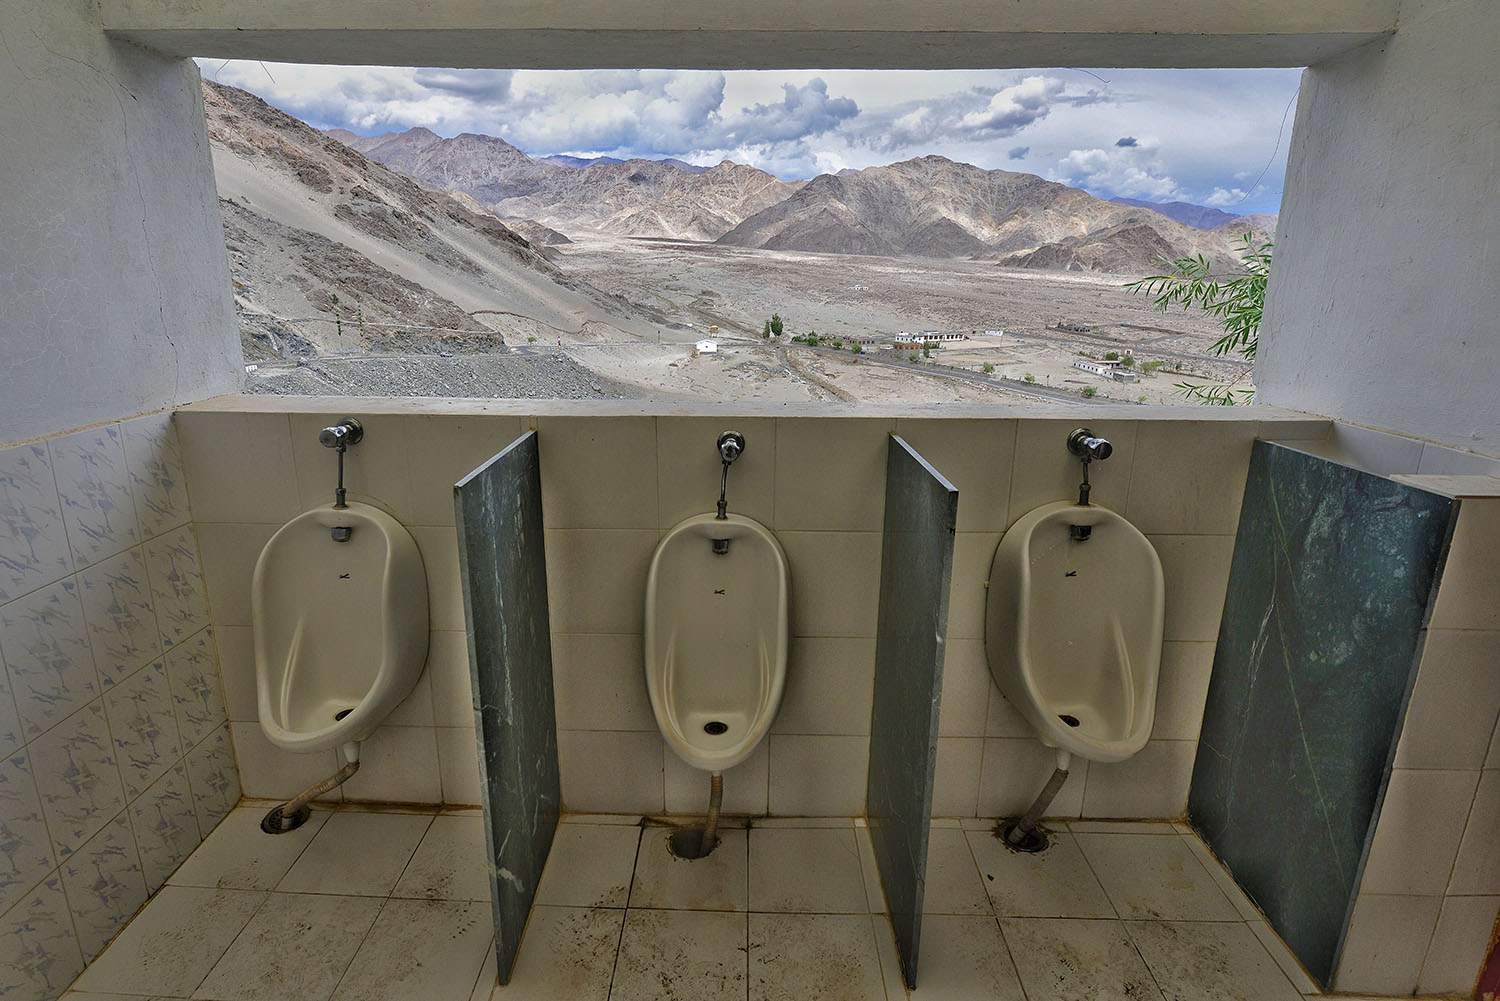 """500px Photo ID: 117799949 - Panorama toilet in in """"Thiksey Monastry"""" in Ladakh / India."""